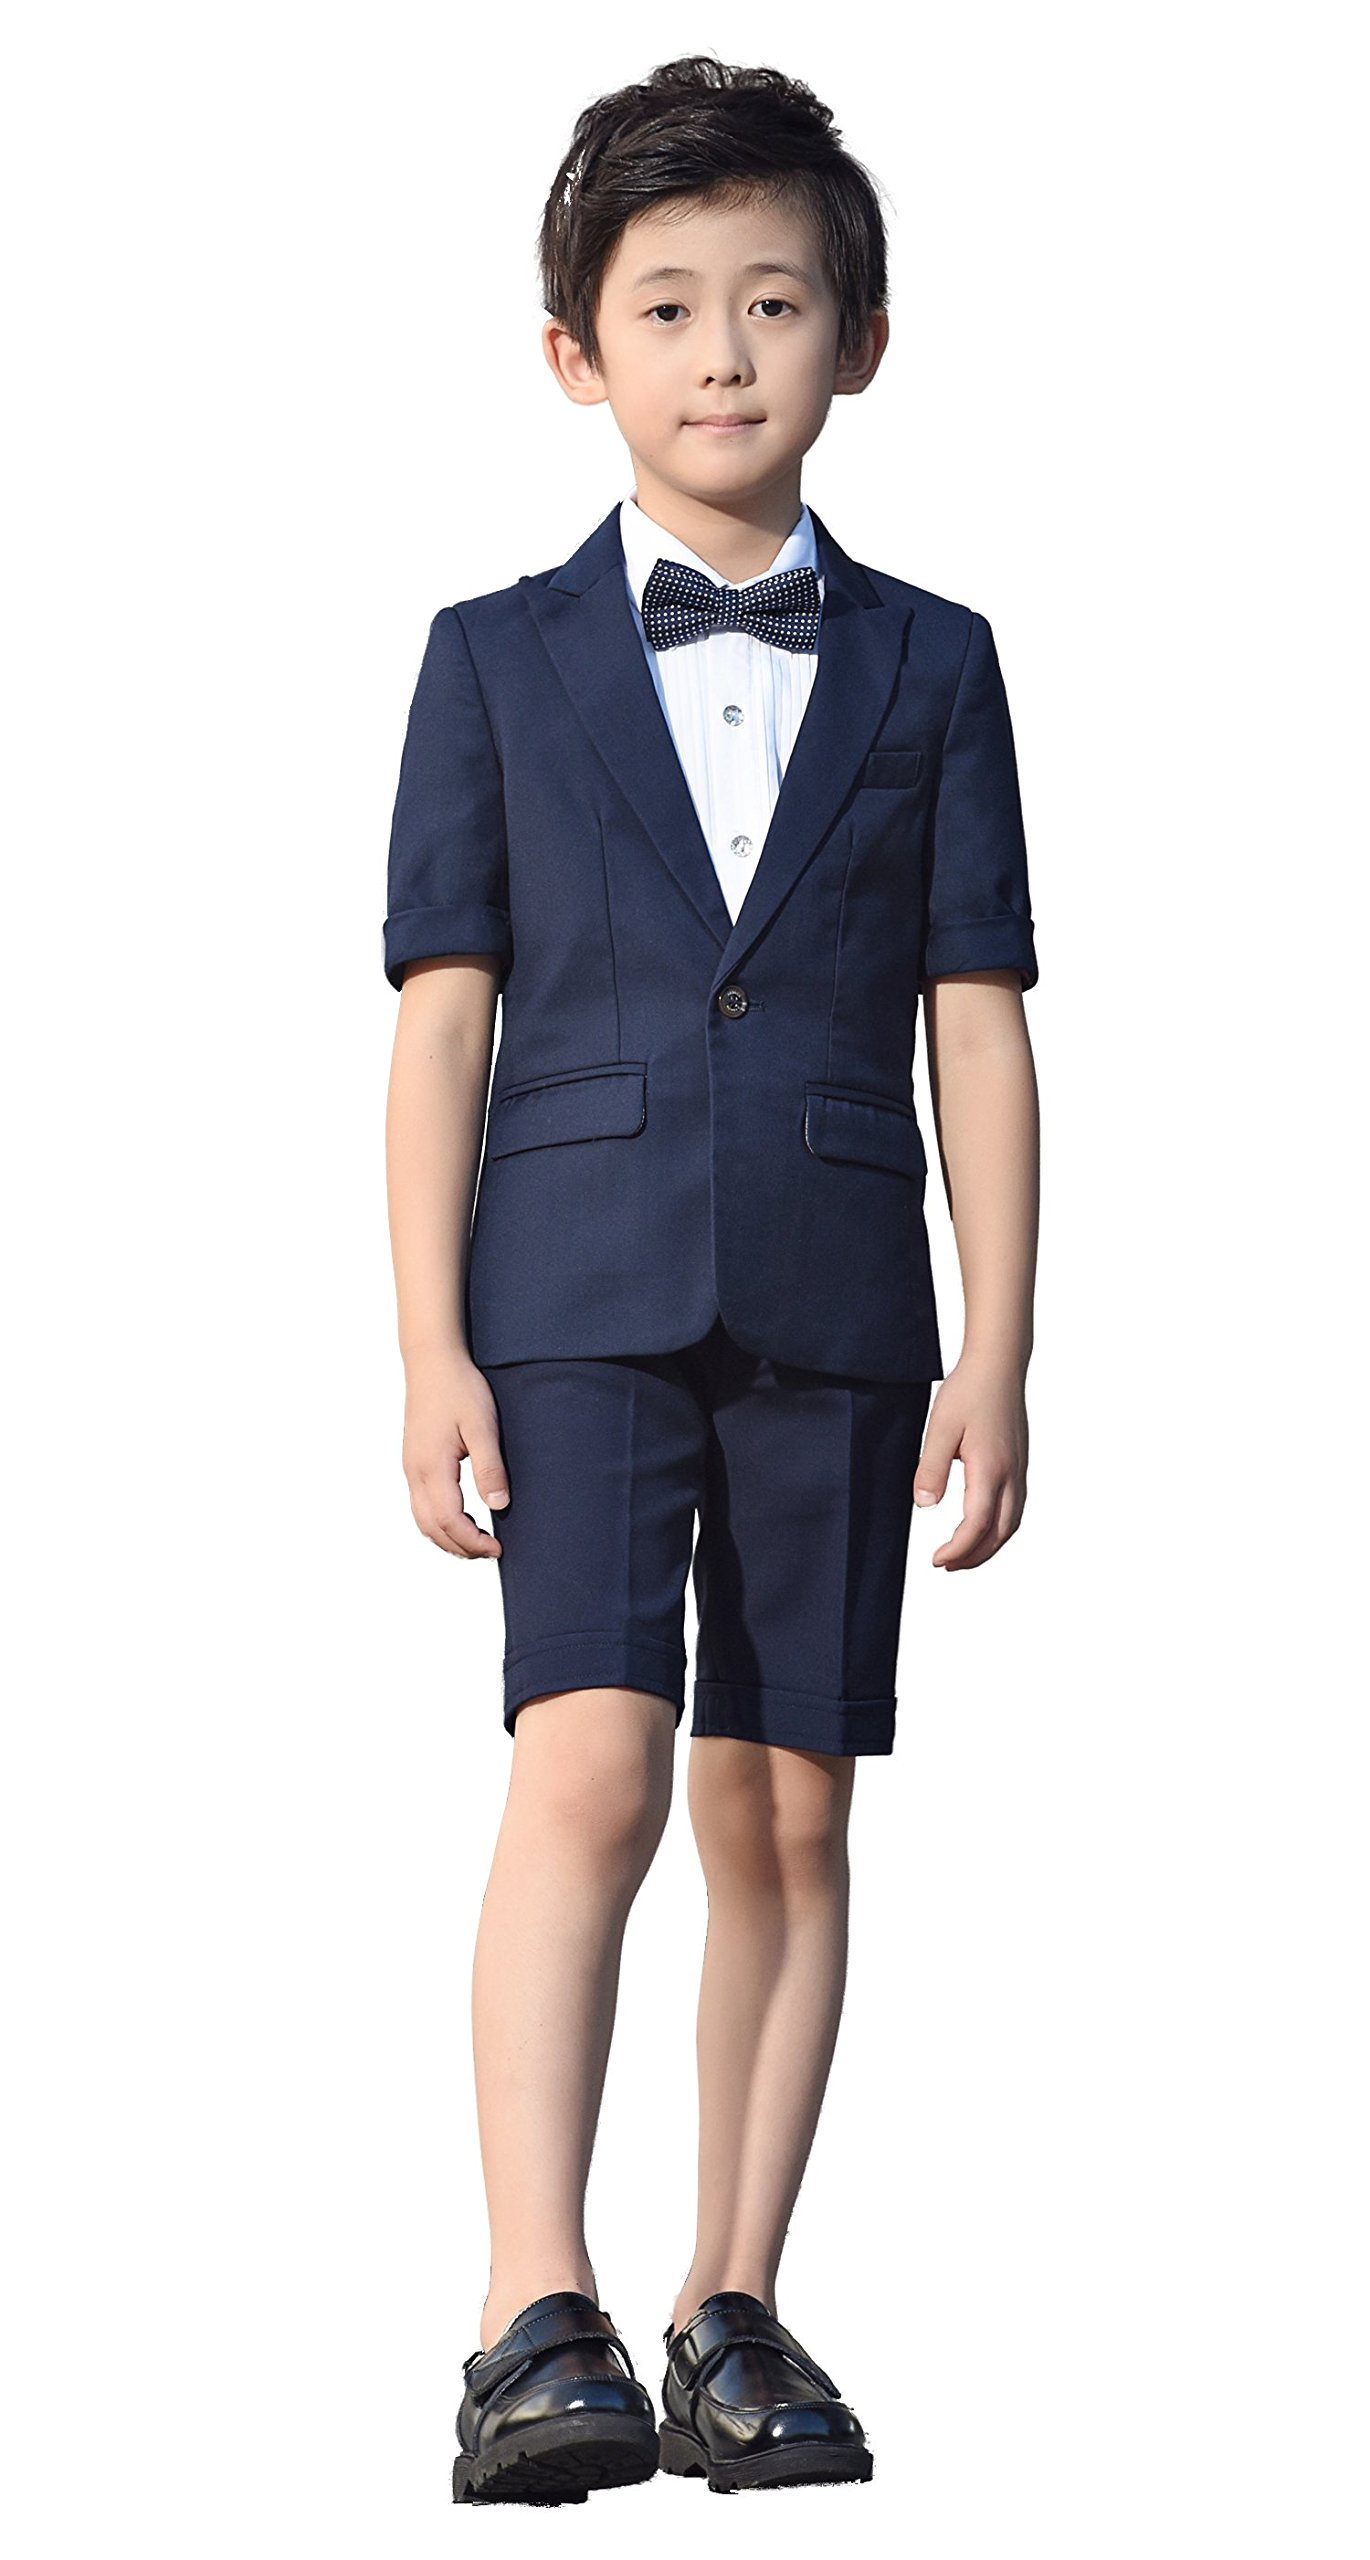 Iyan Boys Short Suits 5 Piece Slim Fit Suit for Boys Navy Blue Size 4T